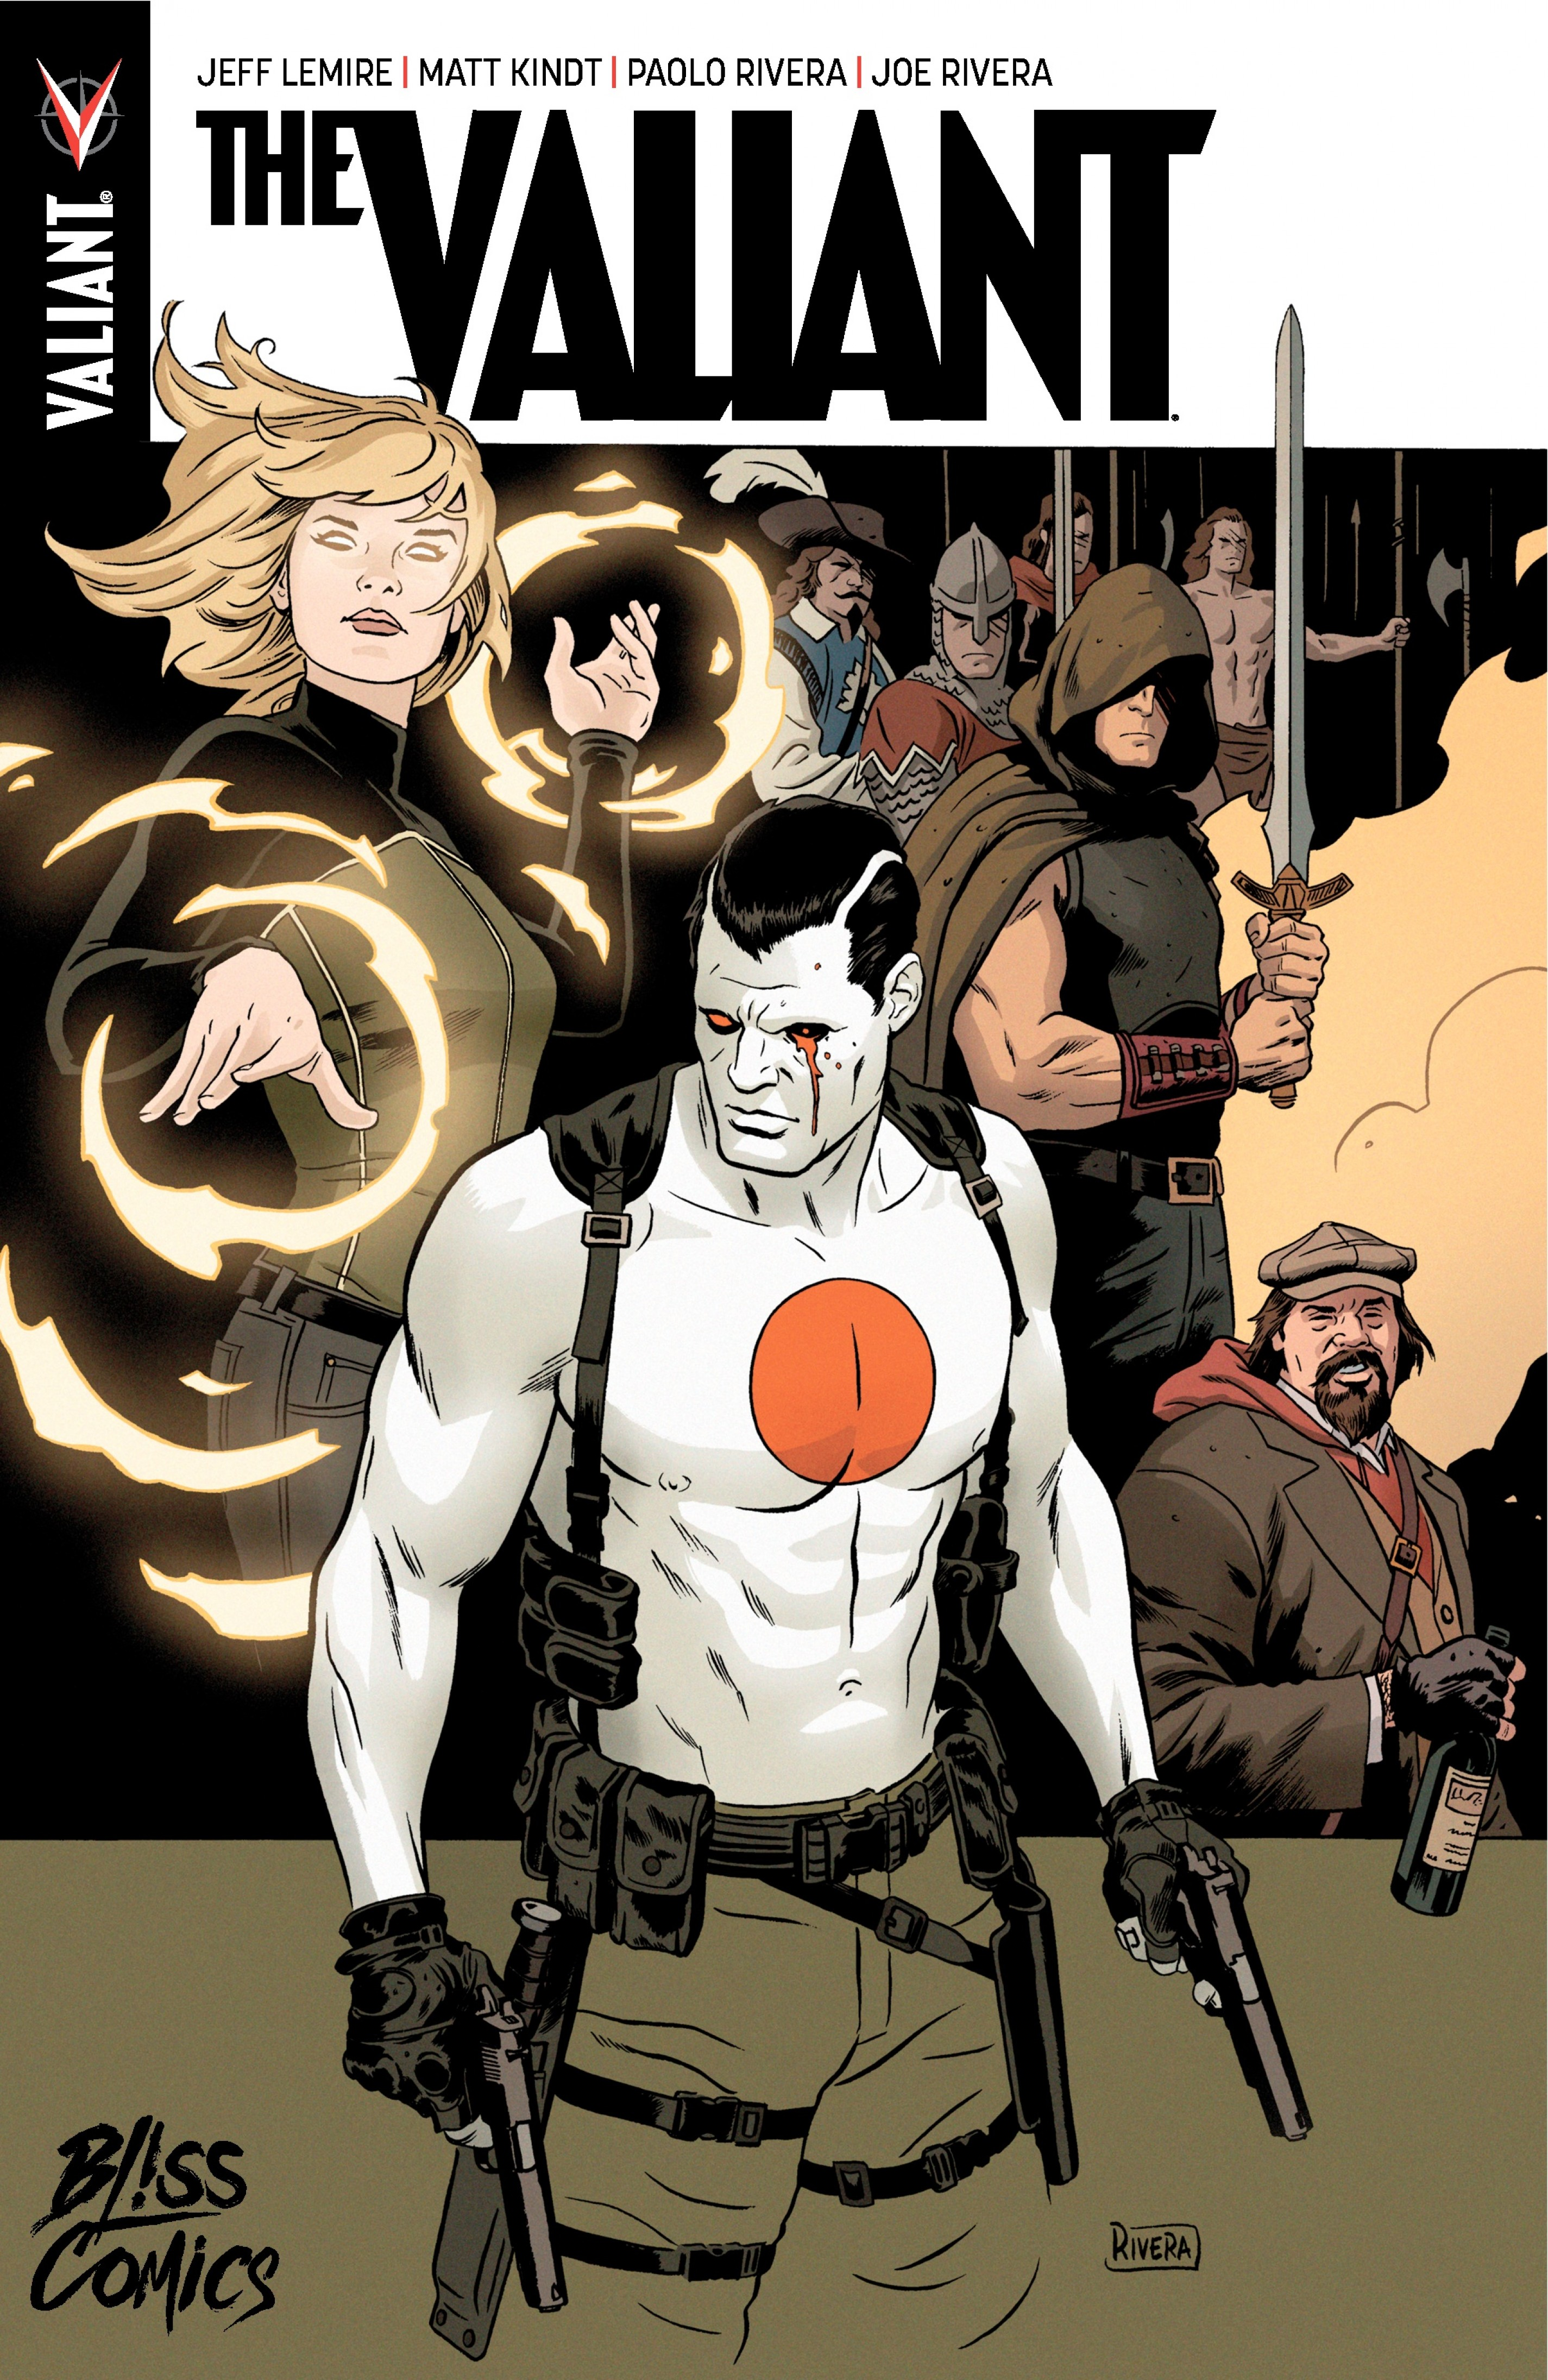 The Valiant, Matt Kindt